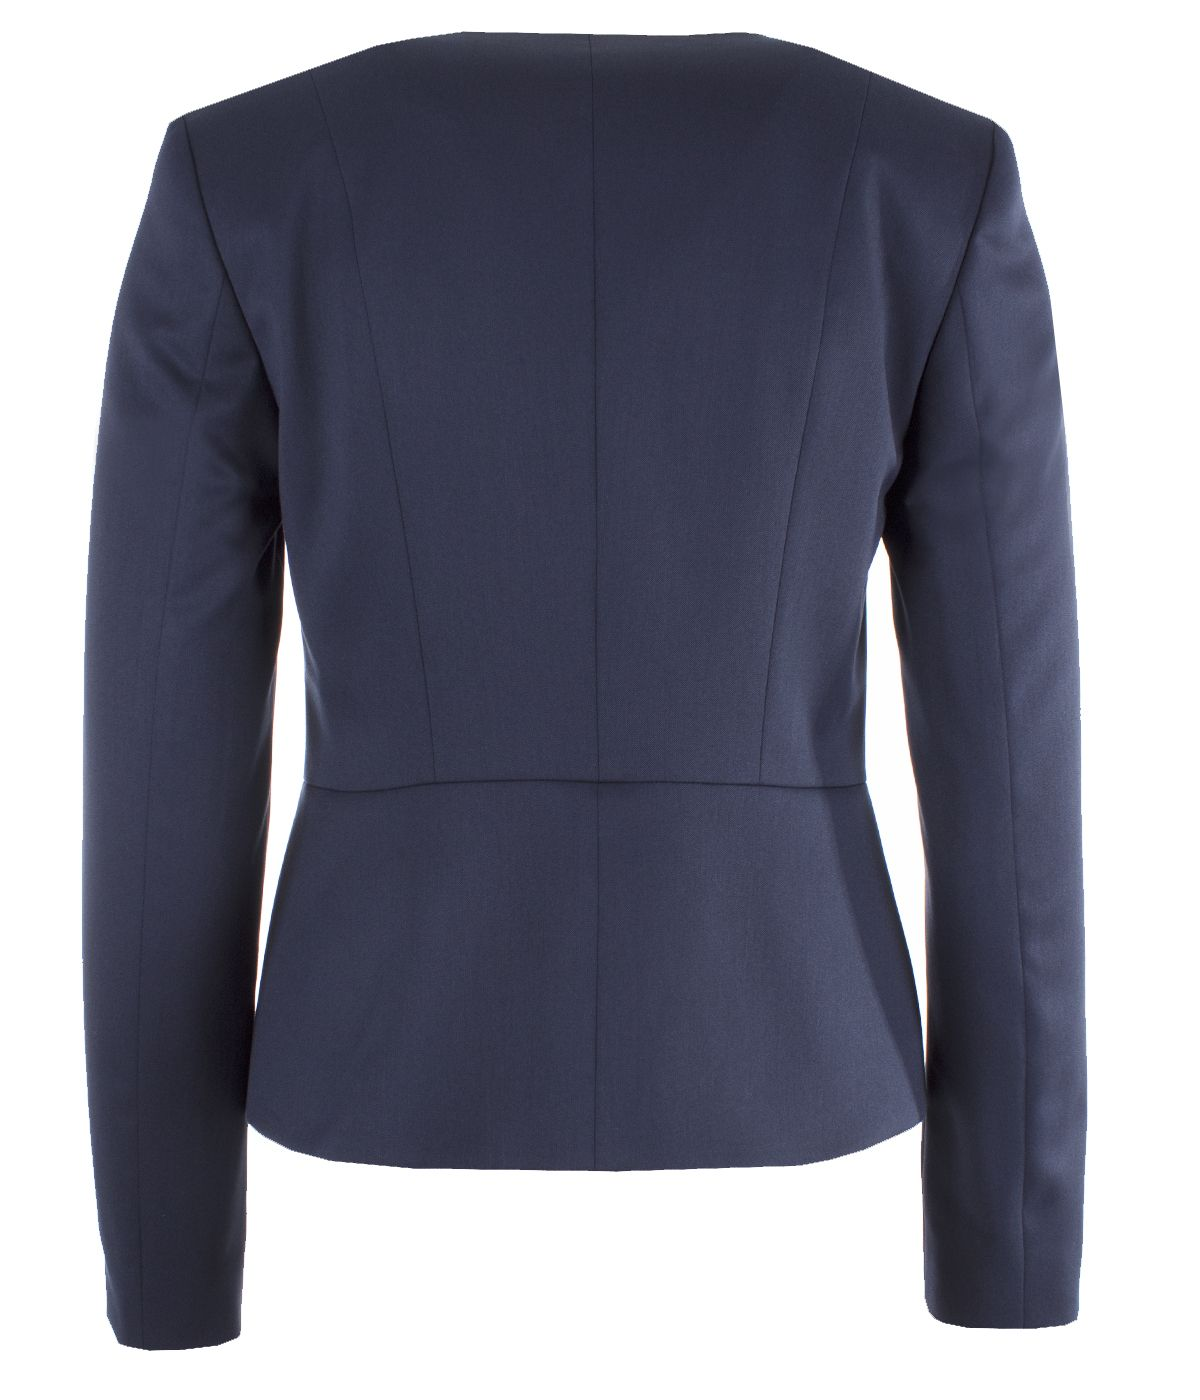 Fitted jacket without lapels with three pearl-type buttons fastening 1